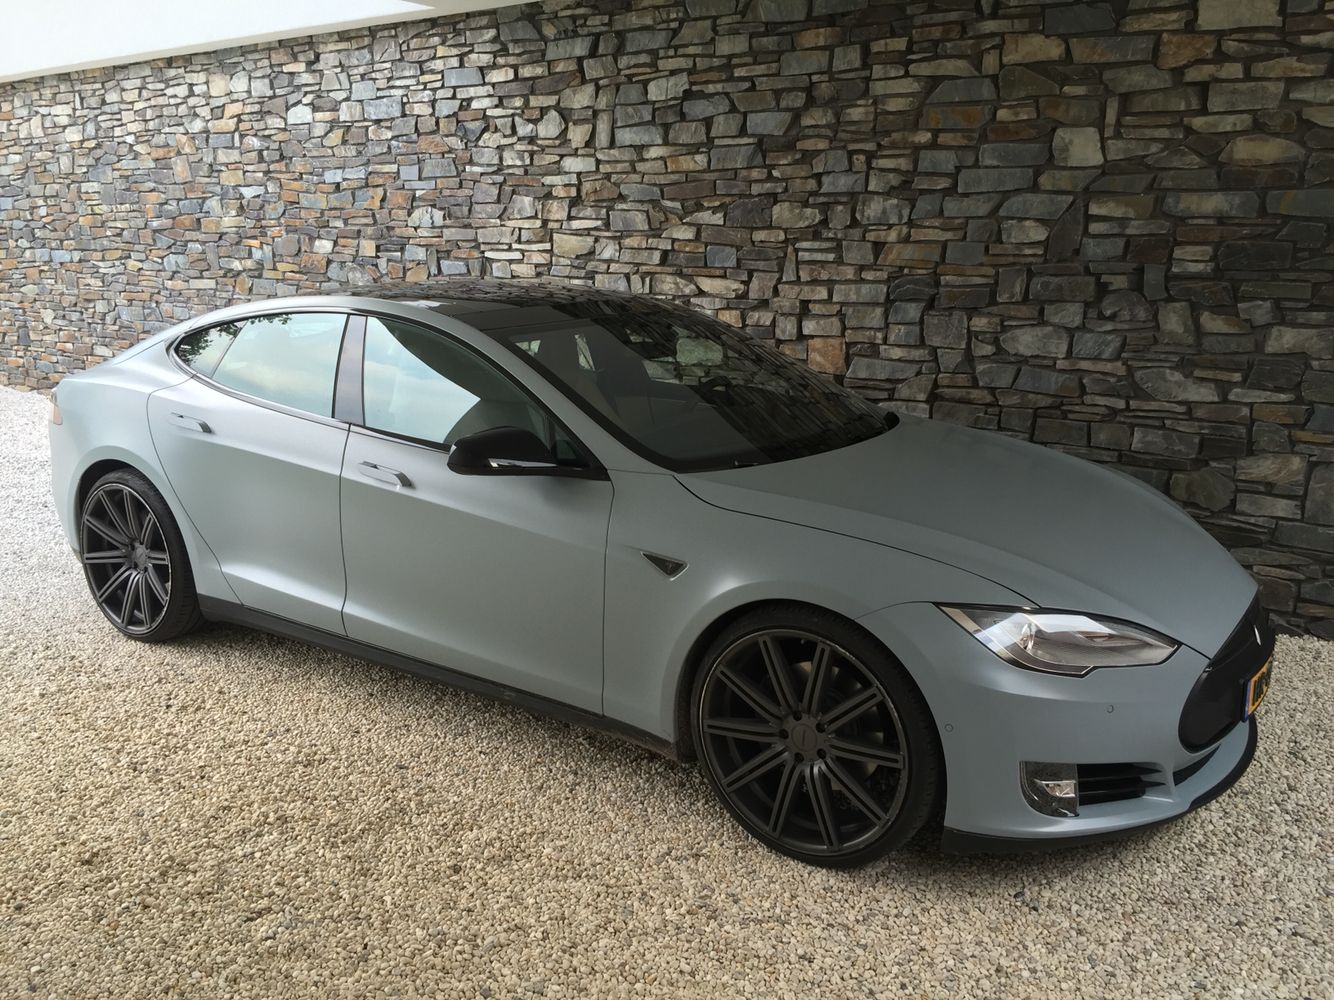 Tesla s vinyl wrap battleship grey 3m 22 vossen wheels black